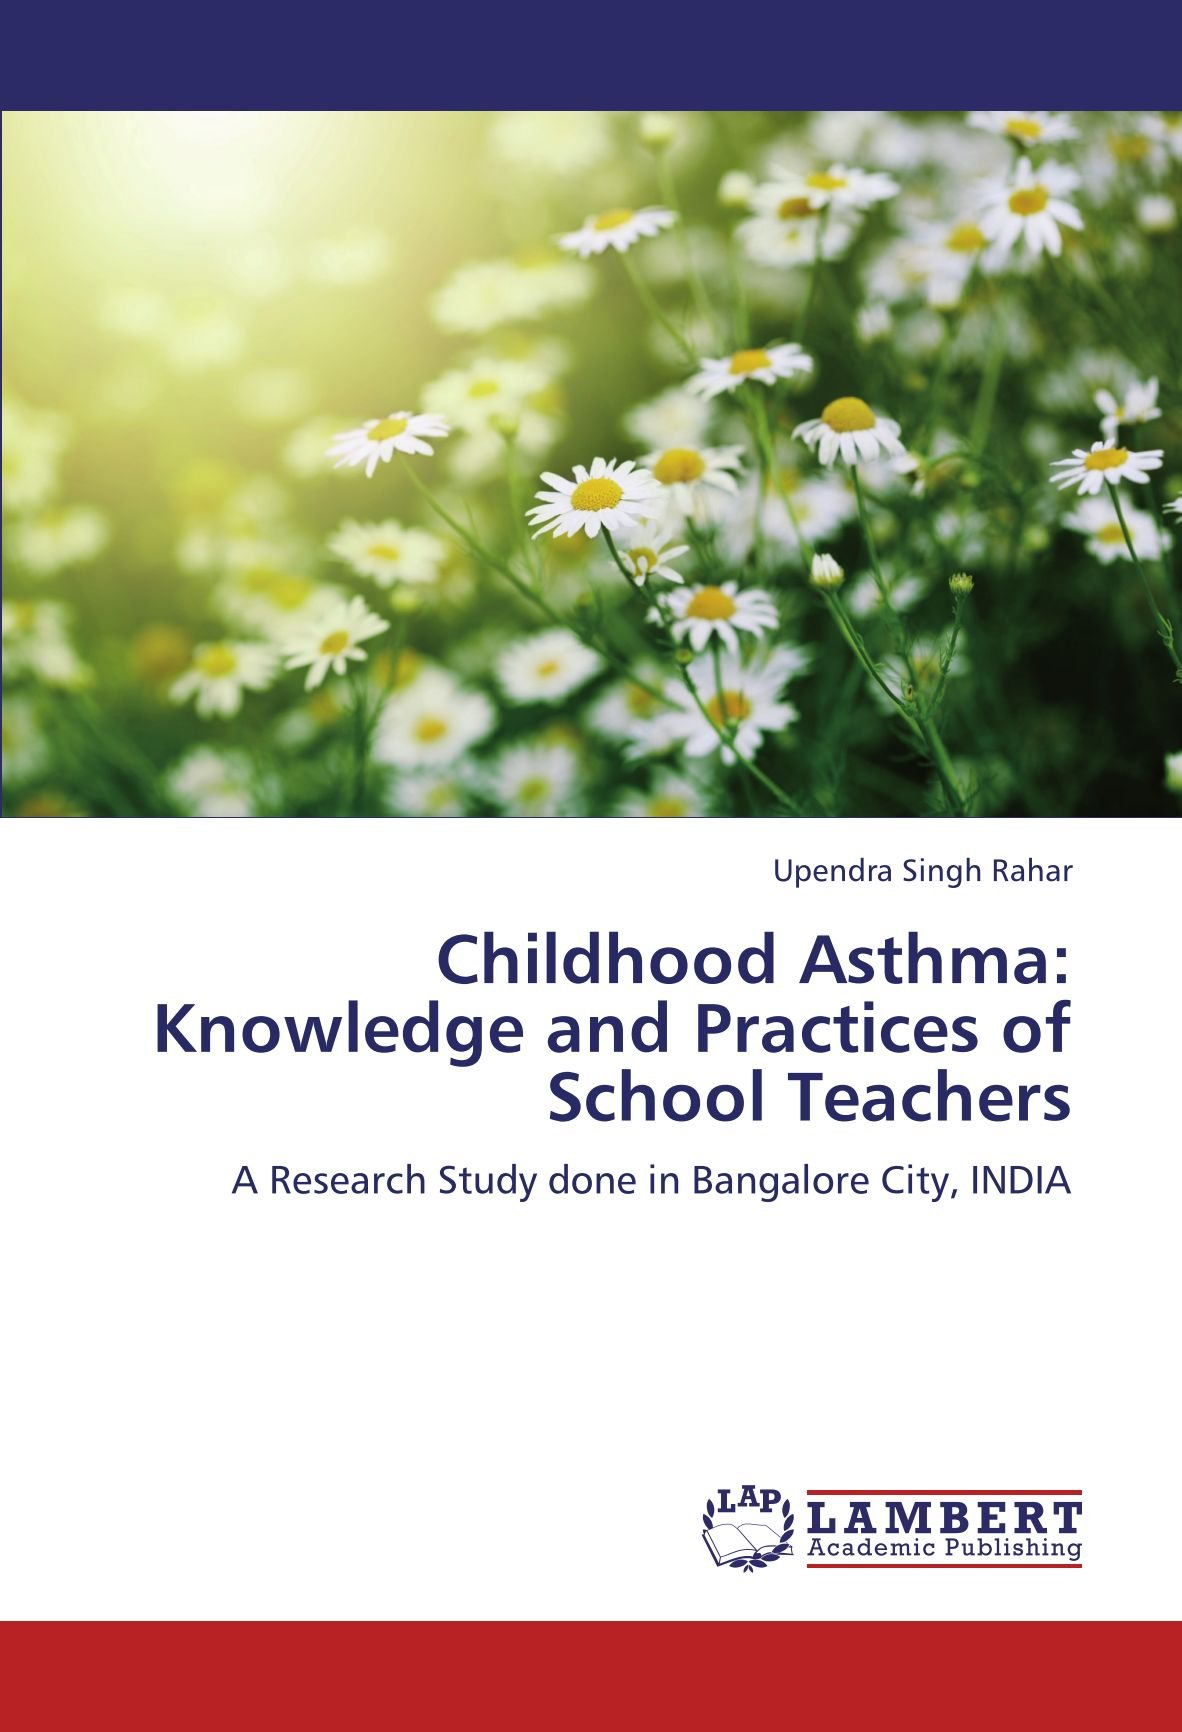 Childhood Asthma: Knowledge and Practices of School Teachers: A Research Study done in Bangalore City, INDIA ebook